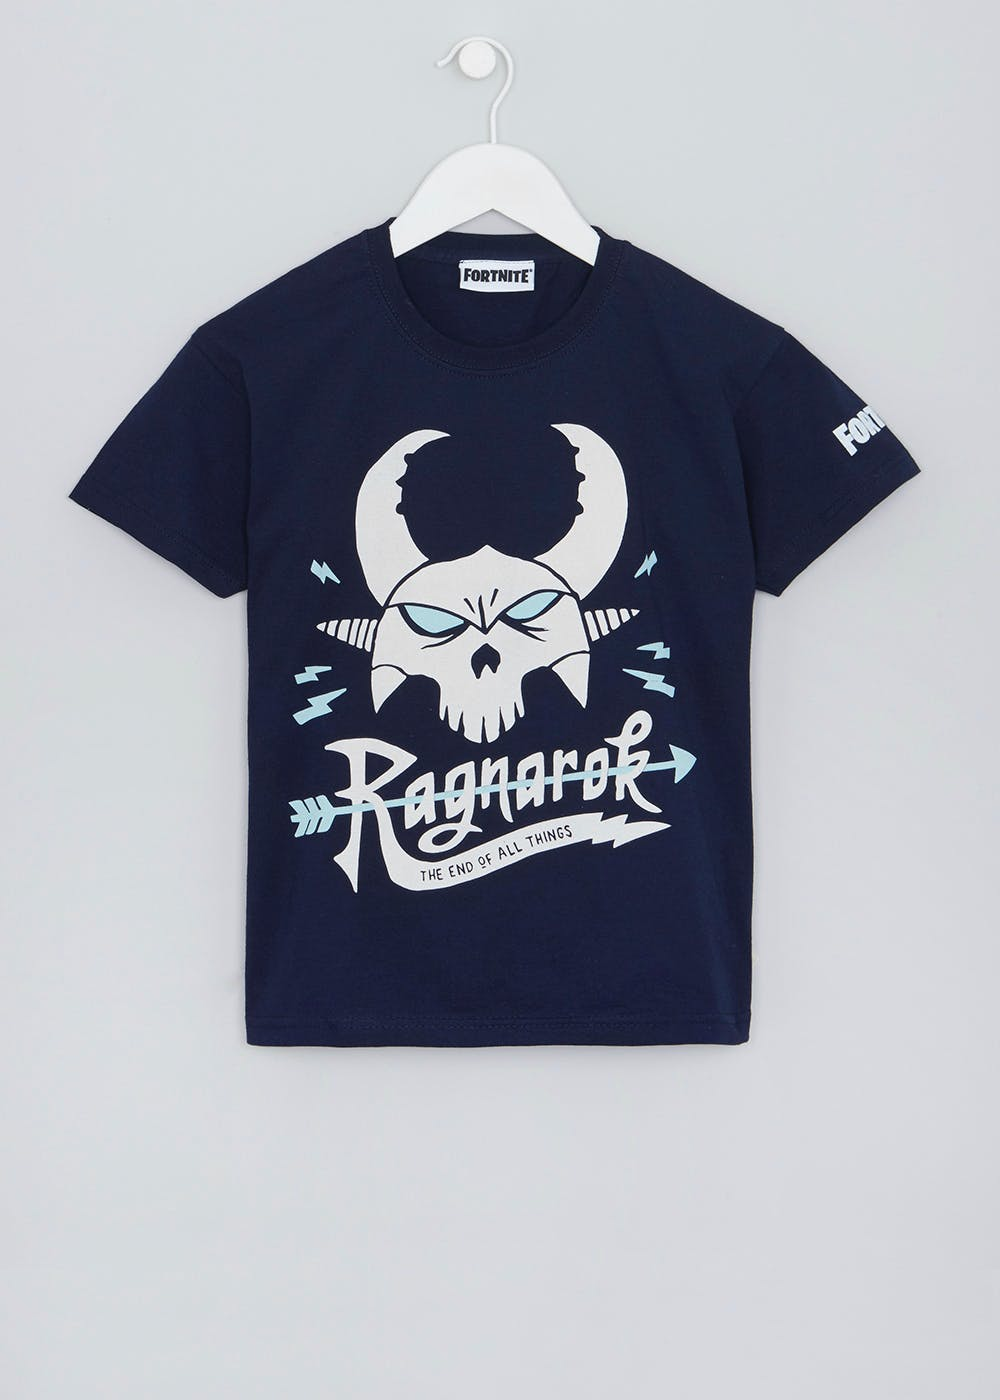 708bbcf72 Kids Fortnite Ragnarok T-Shirt – Navy – Matalan